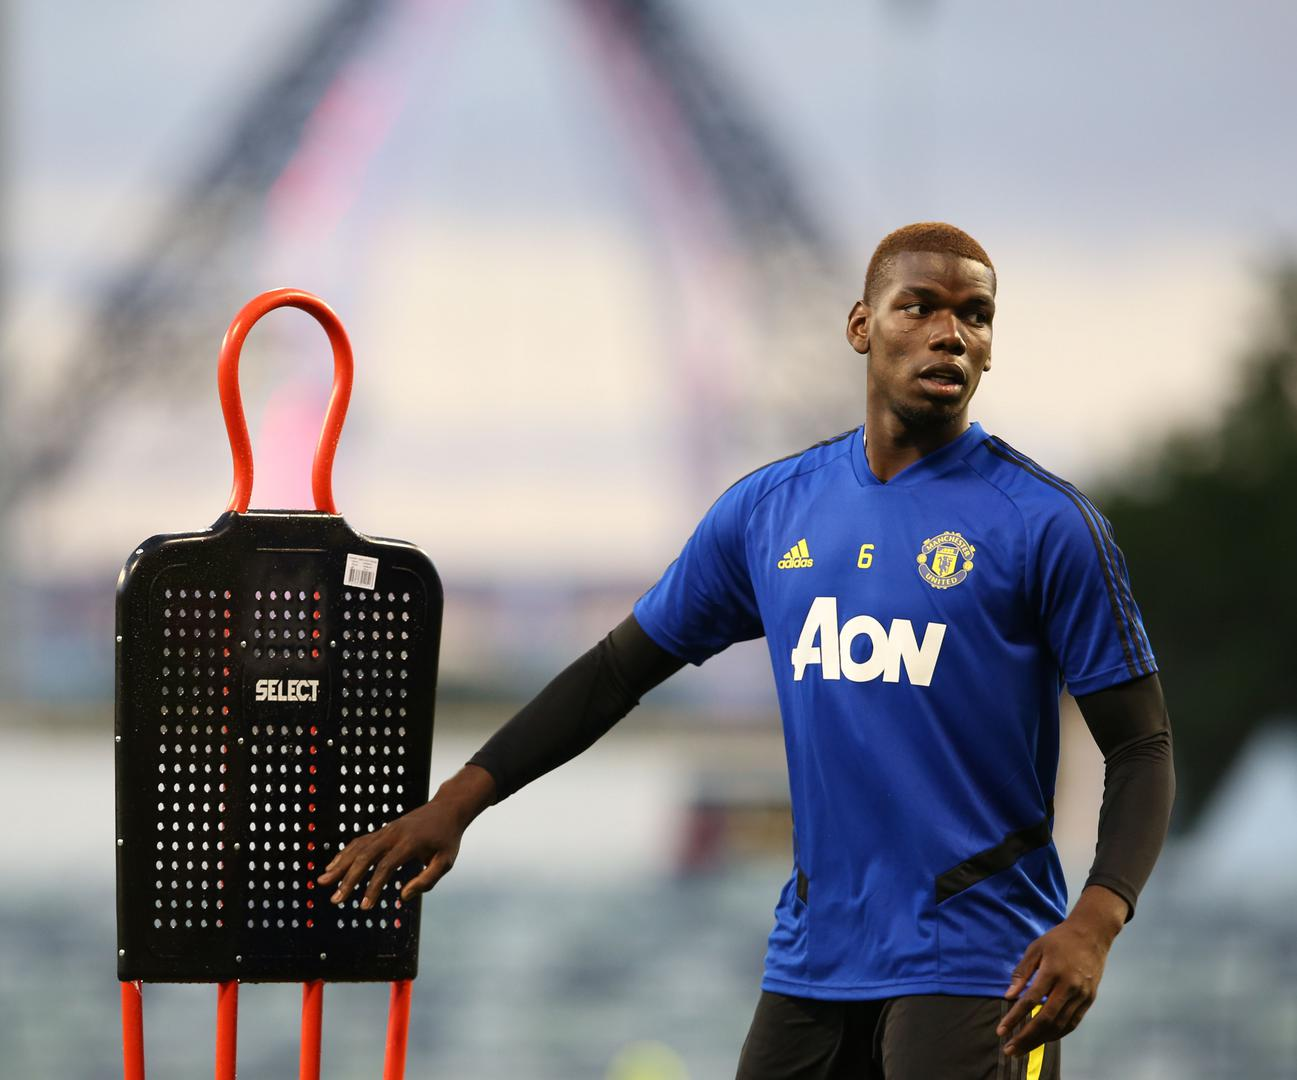 Paul Pogba takes part in training sessions at the WACA c。ricket ground in Perth, Australia.